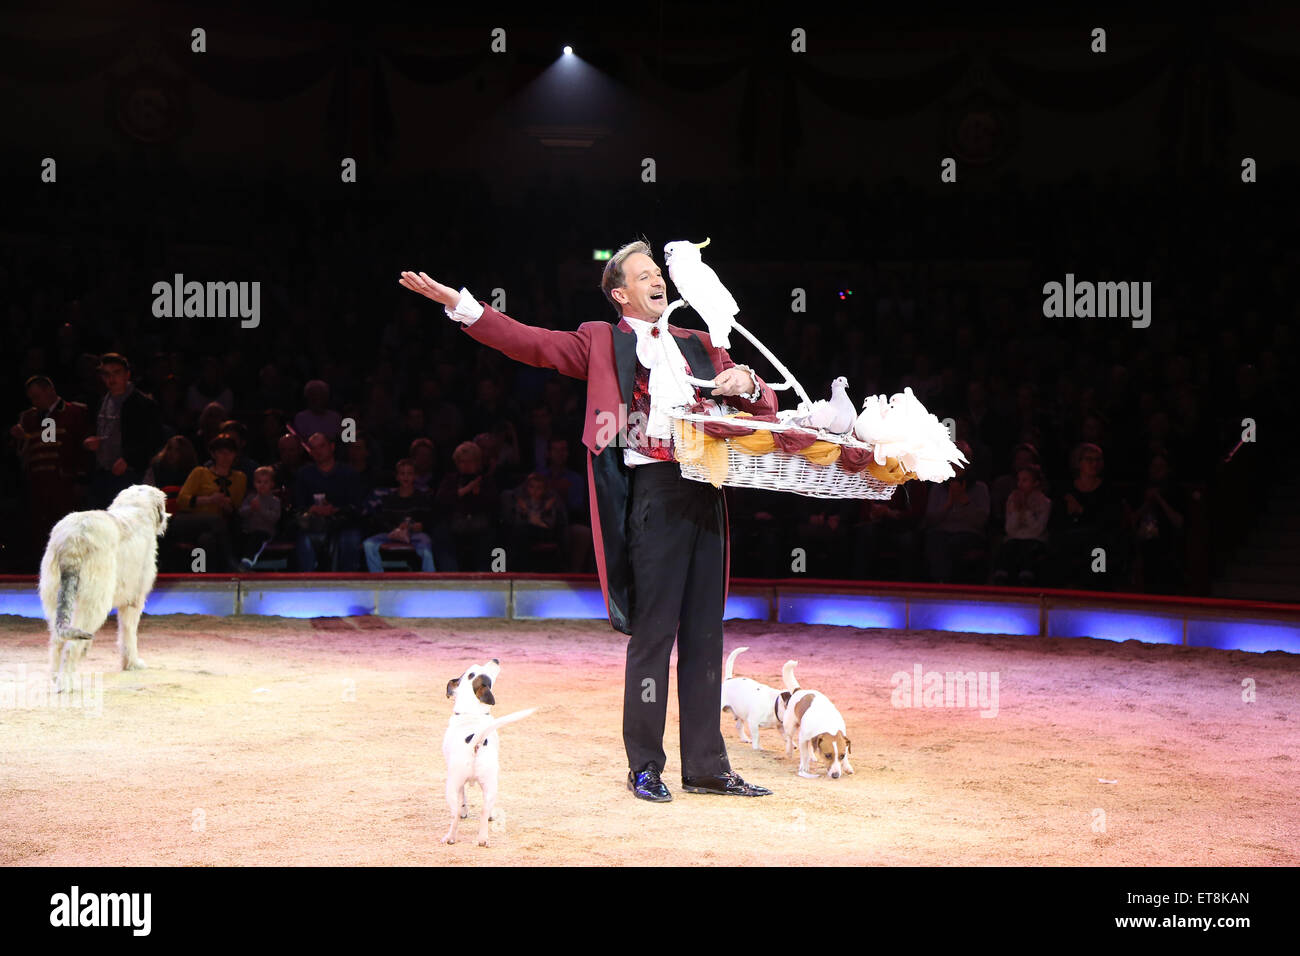 Premiere of the winter program of circus Krone  Featuring: Krenzola Jr.mit Kleintier Revue Where: Munich, Germany Stock Photo